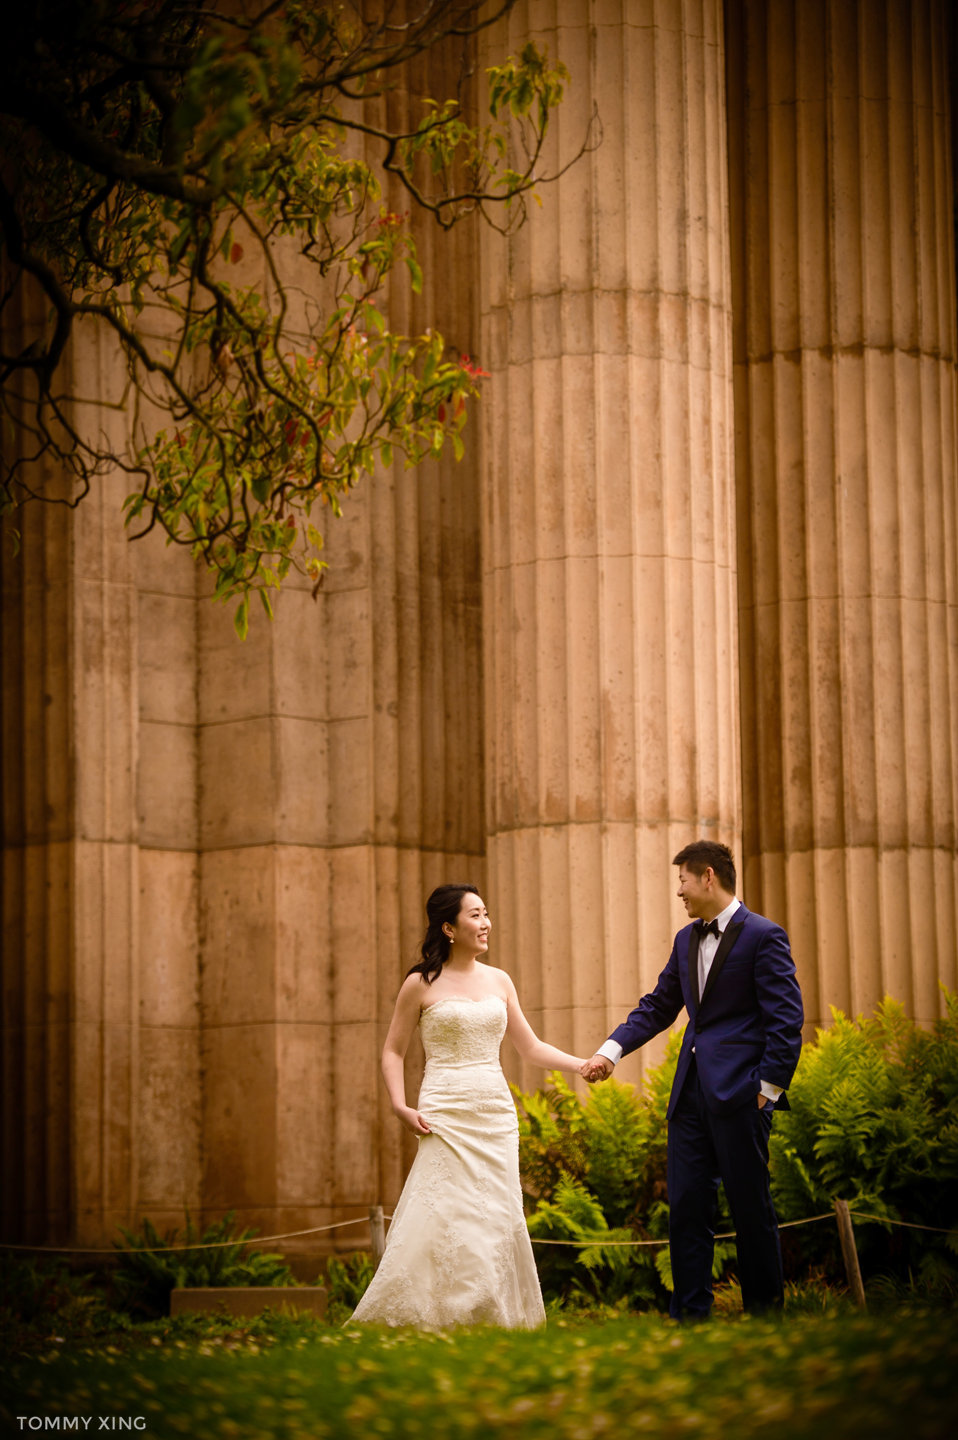 San Francisco Pre Wedding 美国旧金山湾区婚纱照 摄影师Tommy Xing Photography 19.jpg